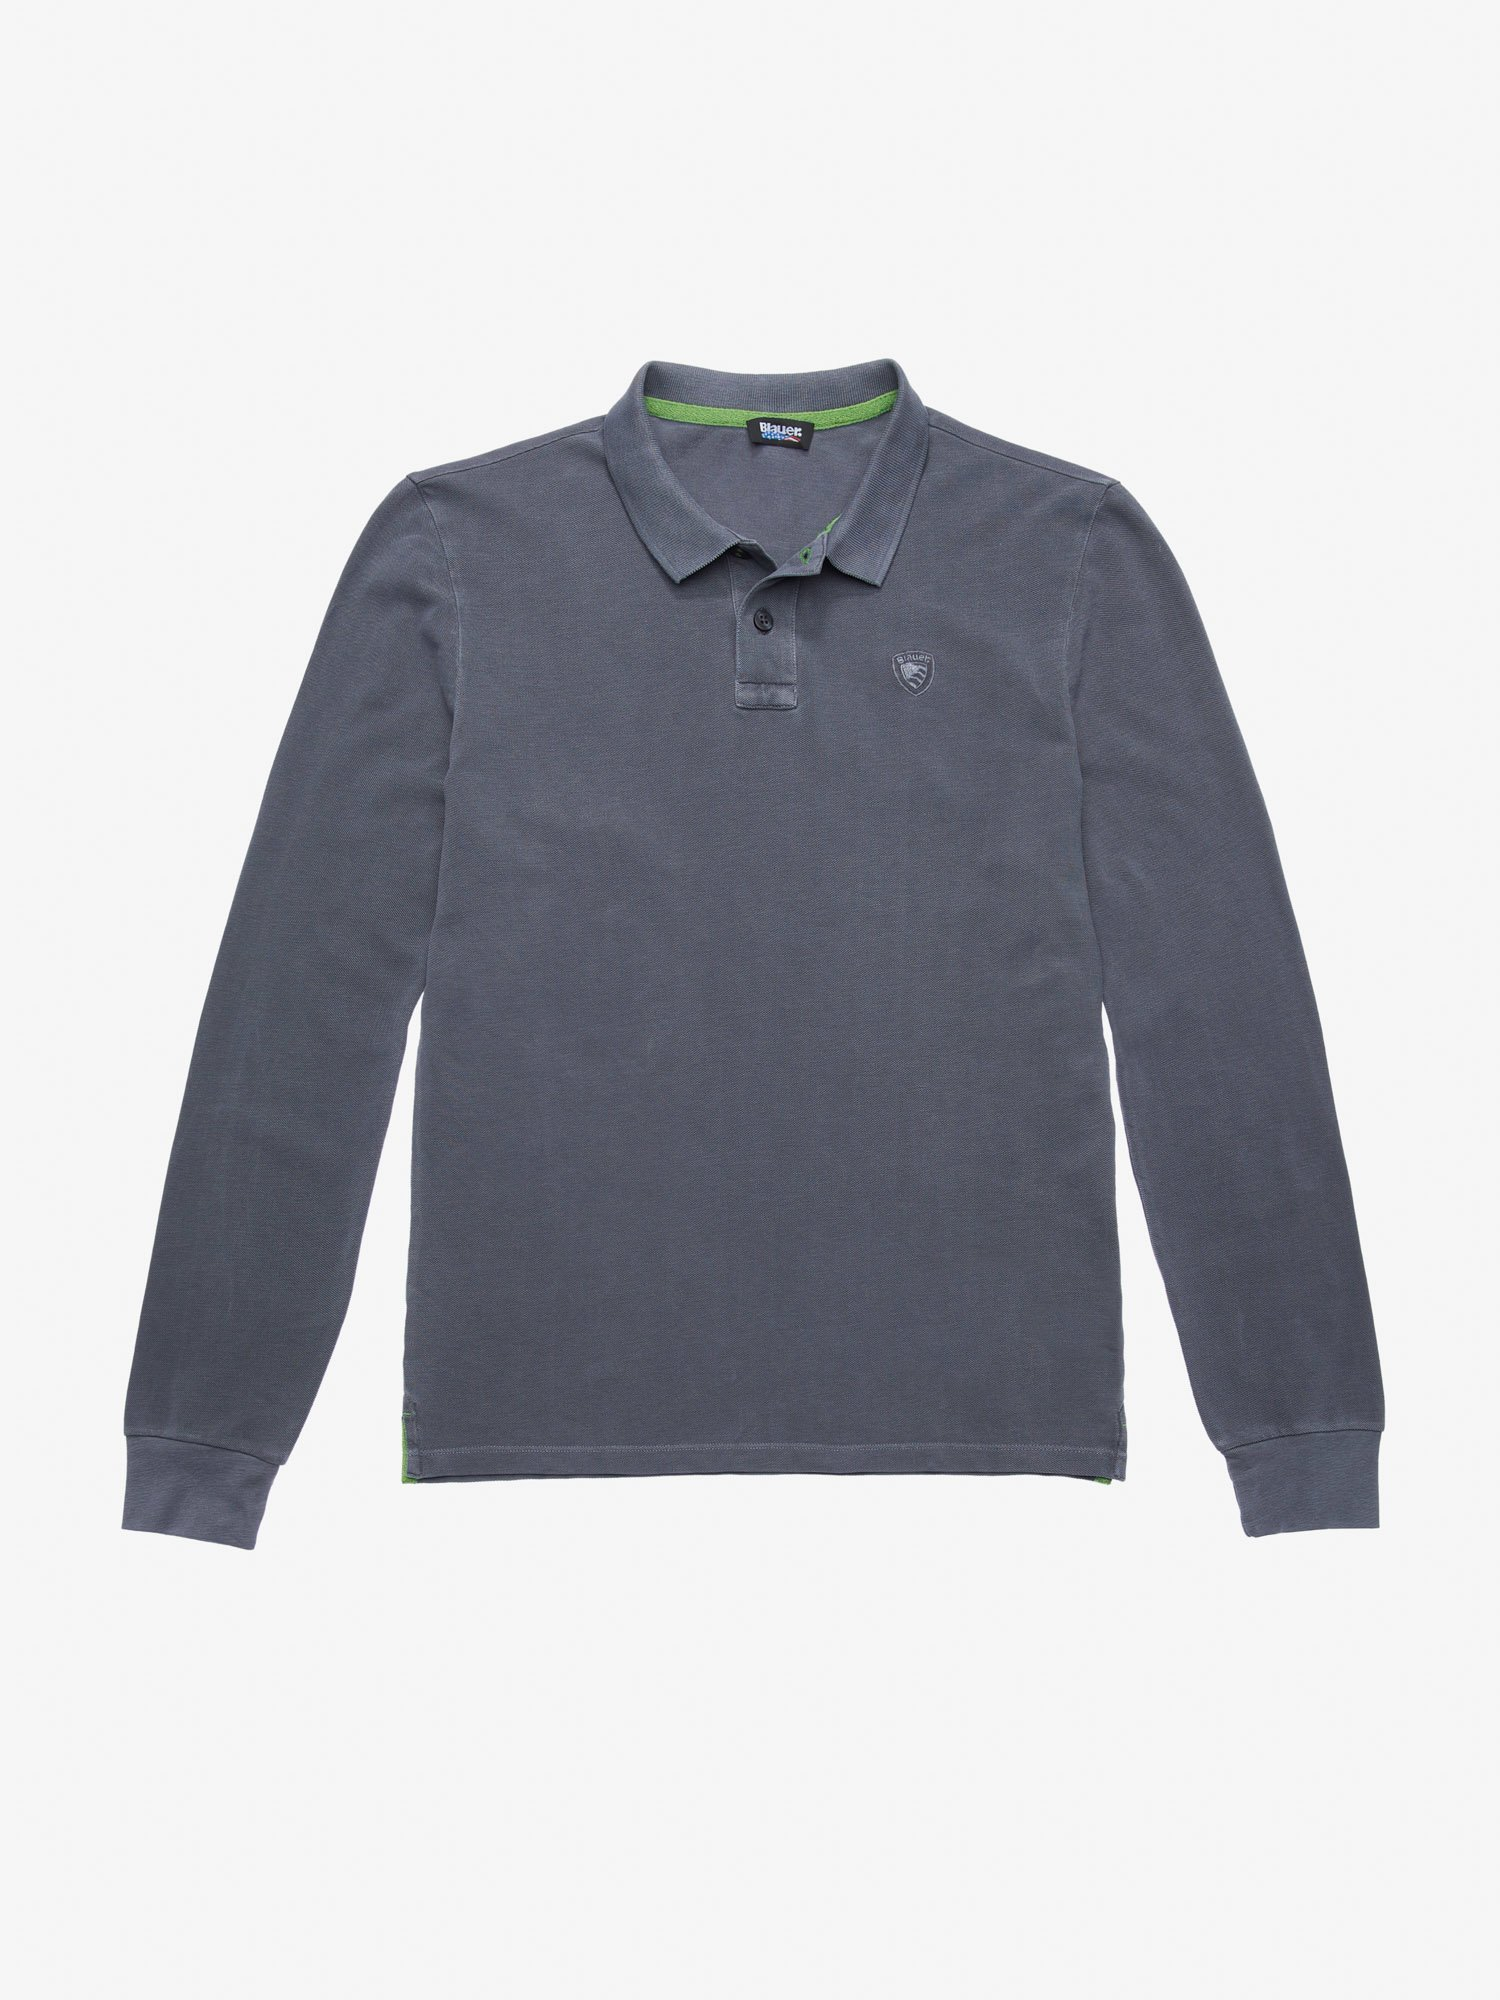 Blauer - LONG SLEEVE GARMENT DYED COTTON POLO SHIRT - Smoke Grey - Blauer